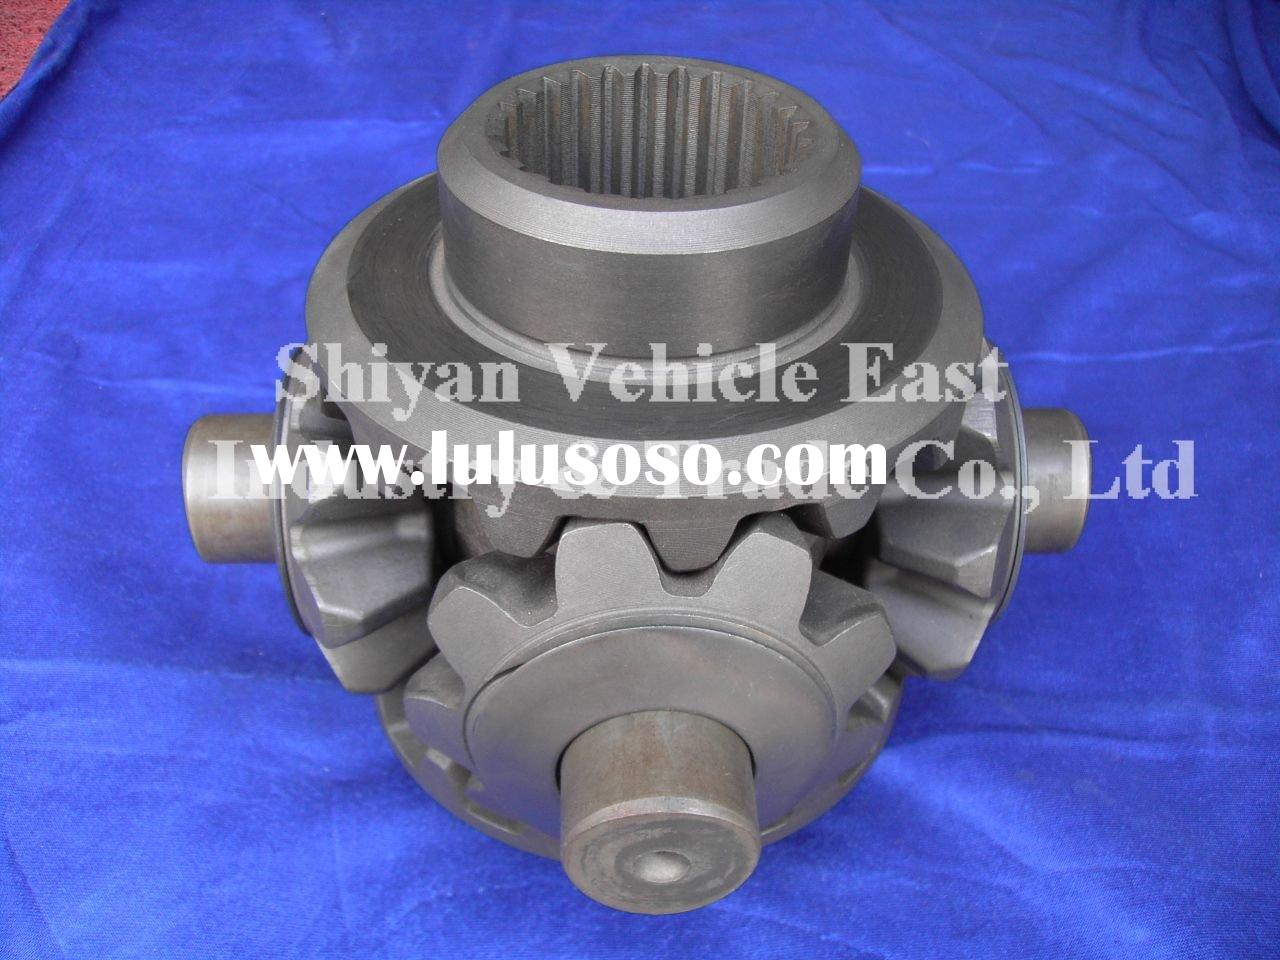 Dongfeng Planetary Gear bevel gear differential